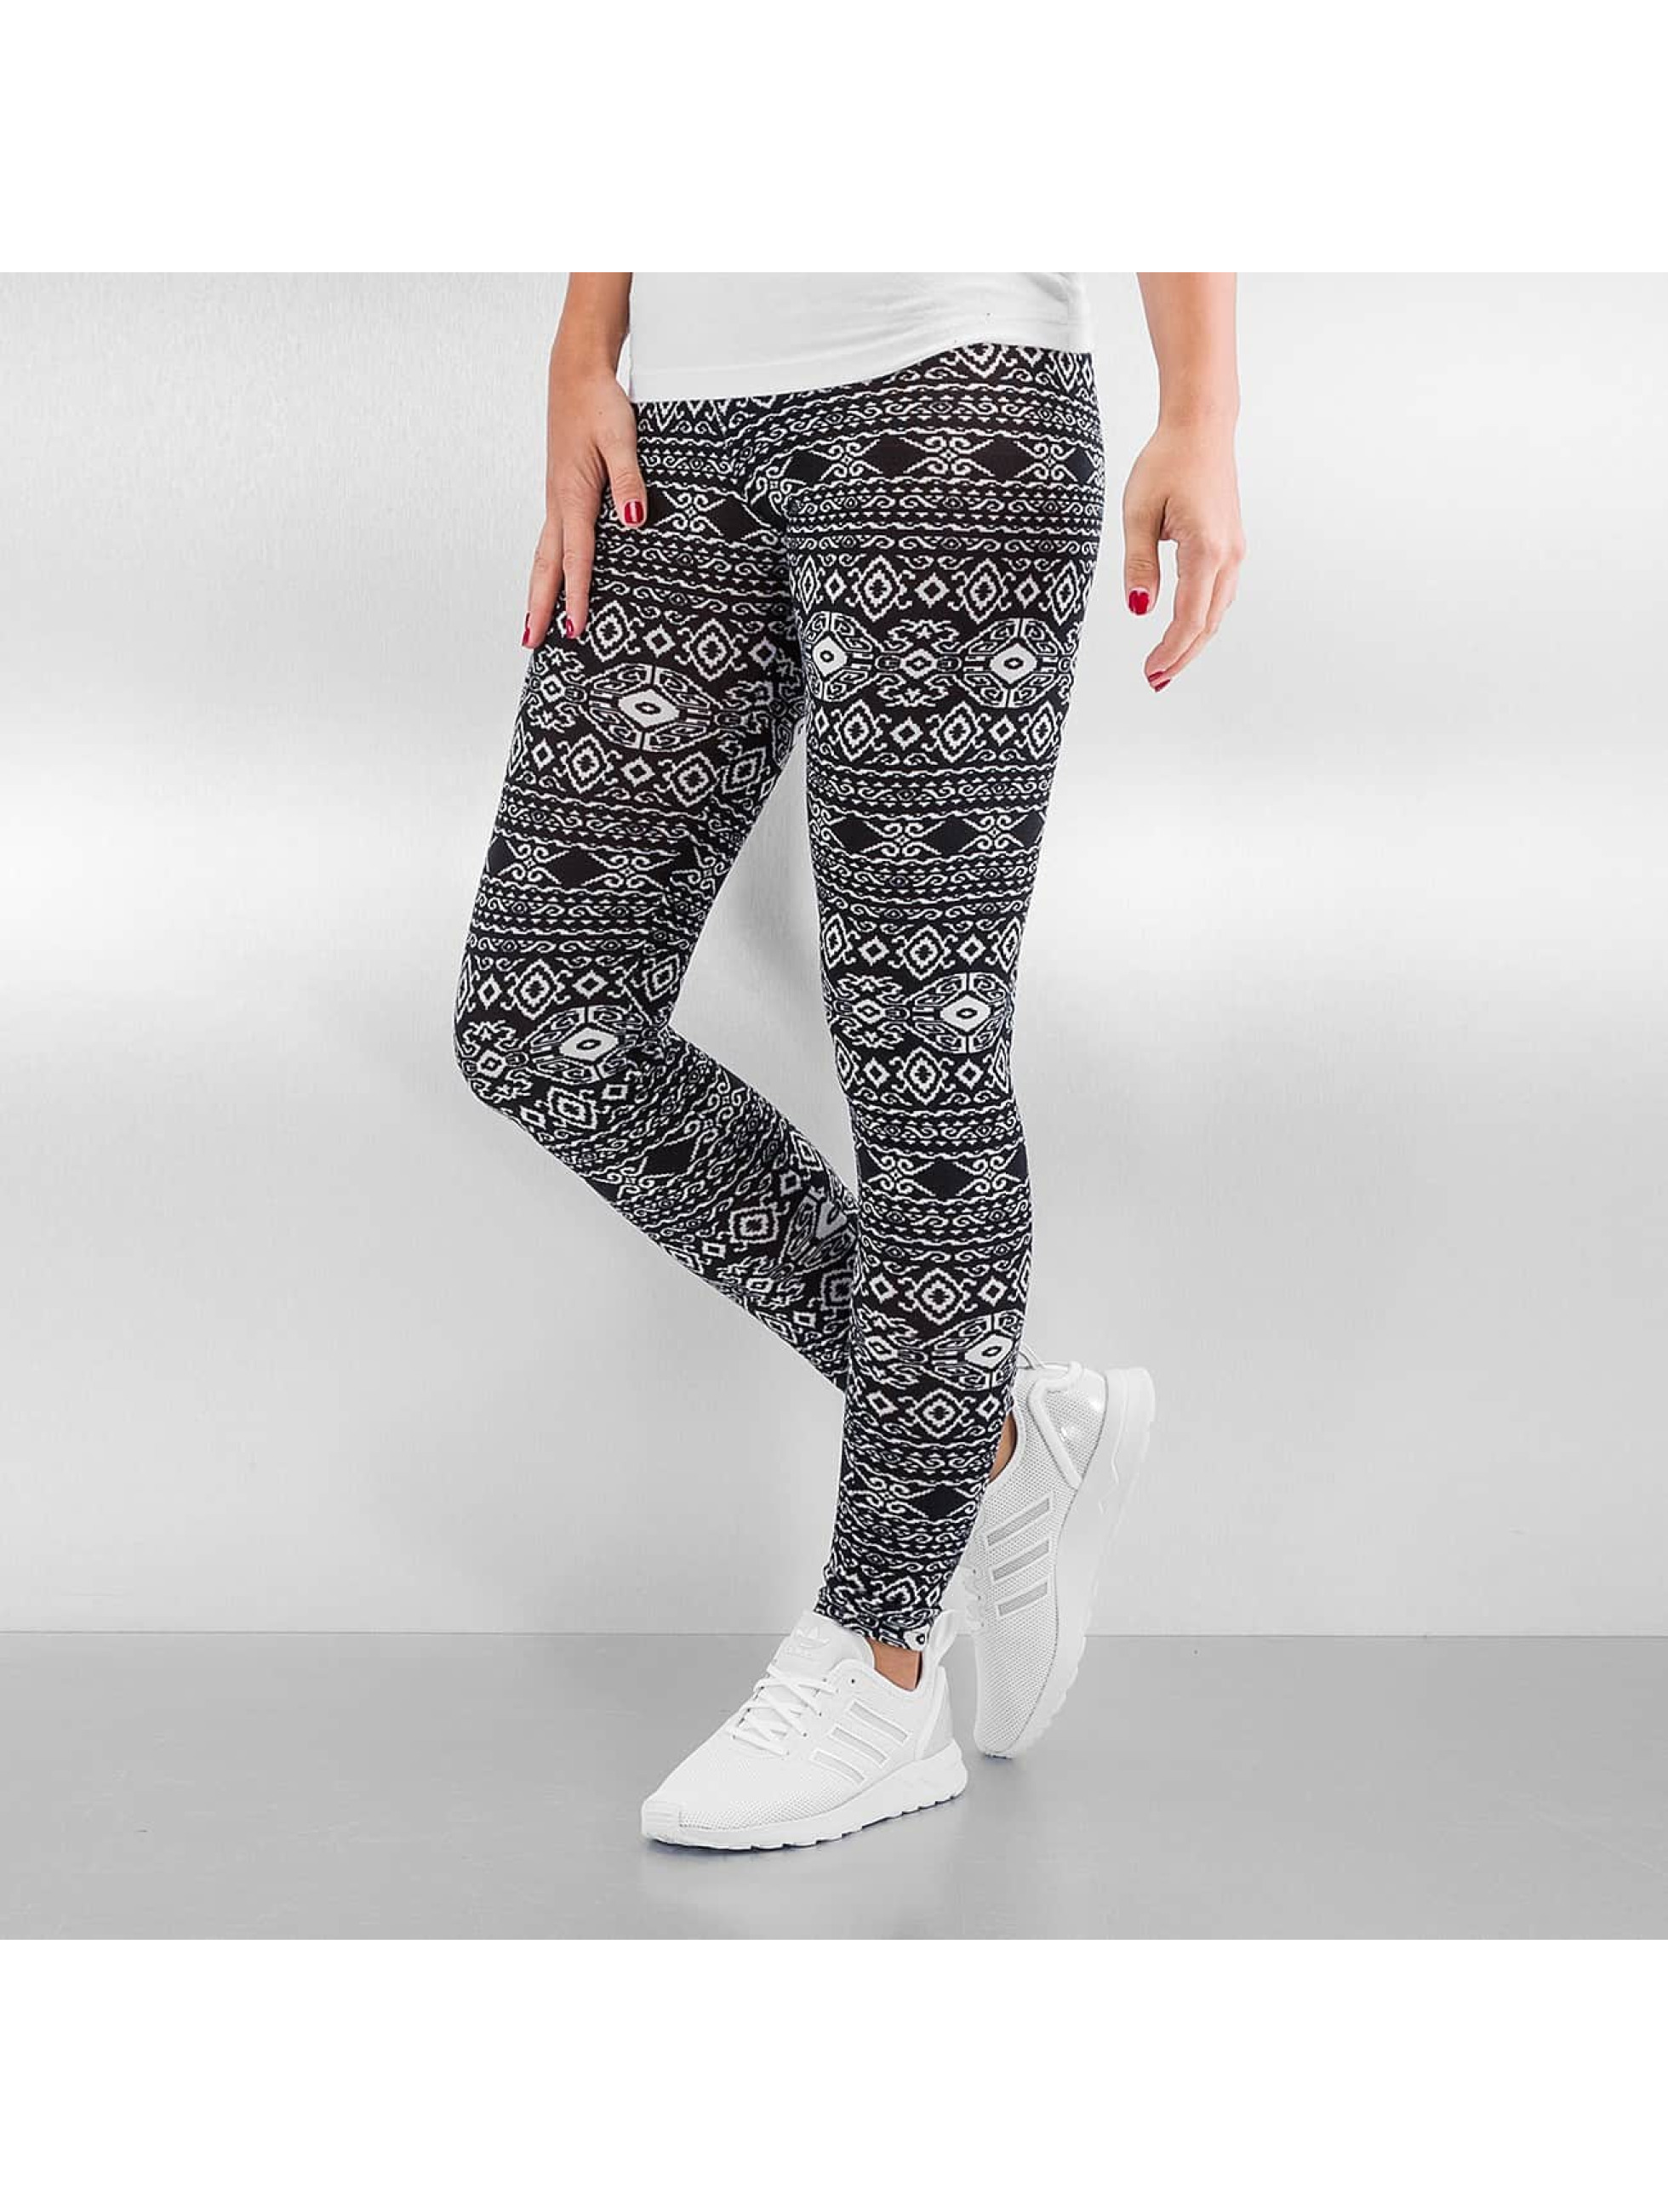 Hailys-Donne-Pantaloni-Leggings-Ola-Winter-nero-305917-L